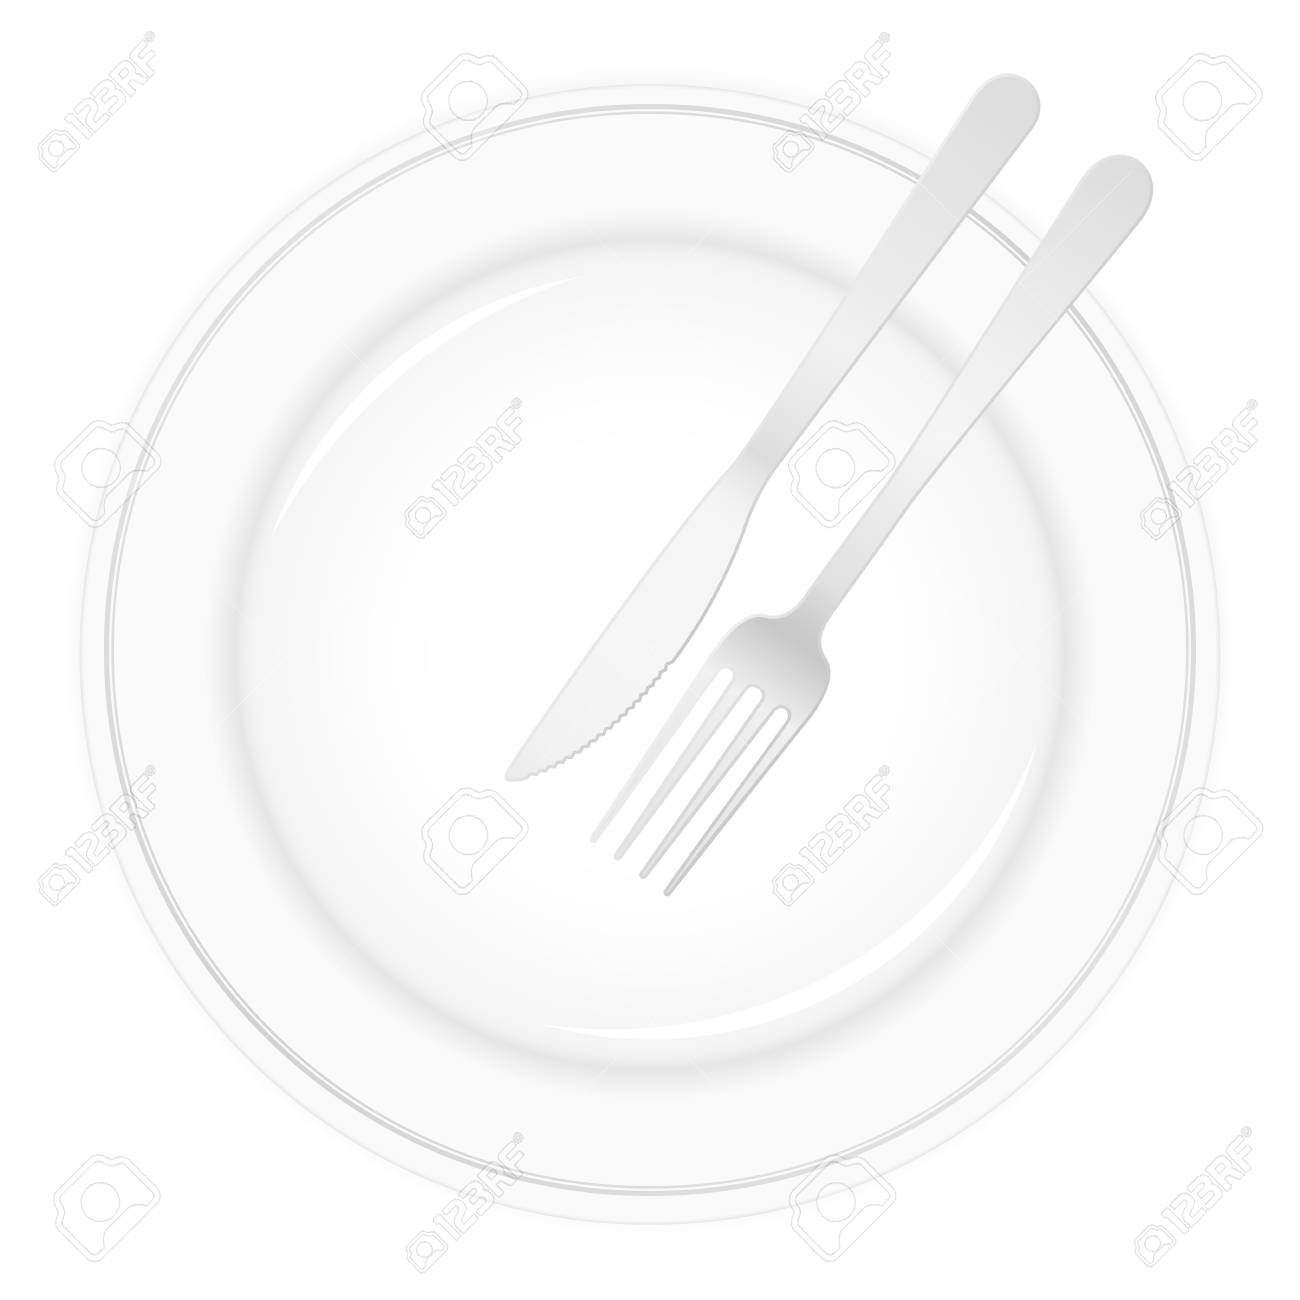 Empty white plate with knife and fork. Stock Vector - 8598934